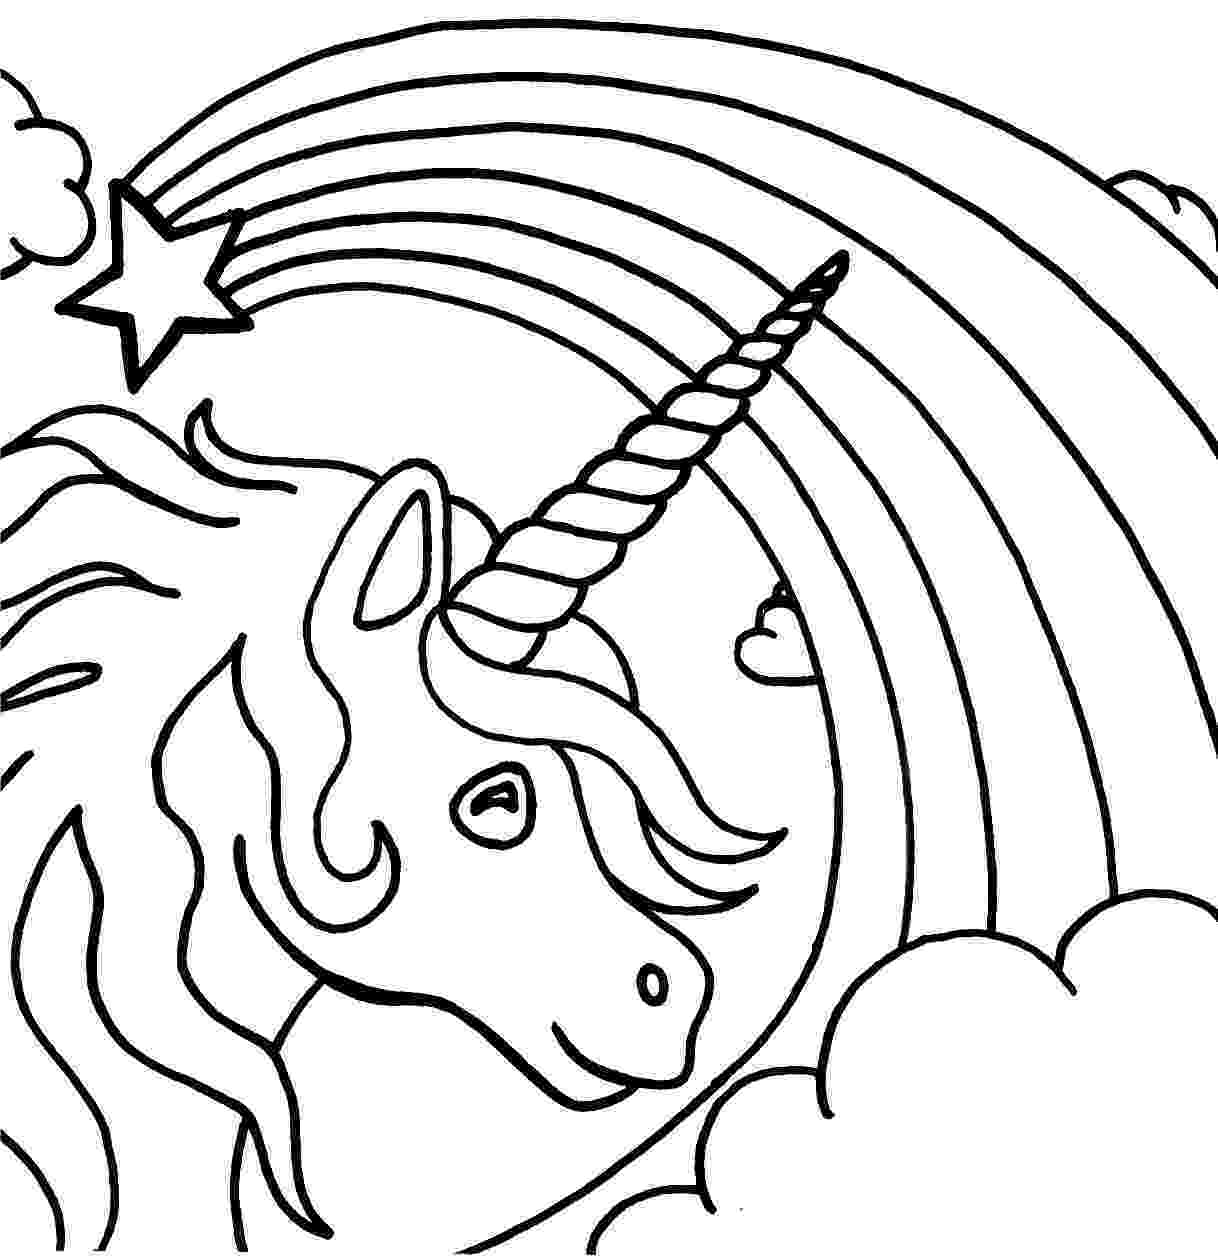 unicorn printable coloring pages lovely unicorn coloring page free printable coloring pages unicorn coloring pages printable